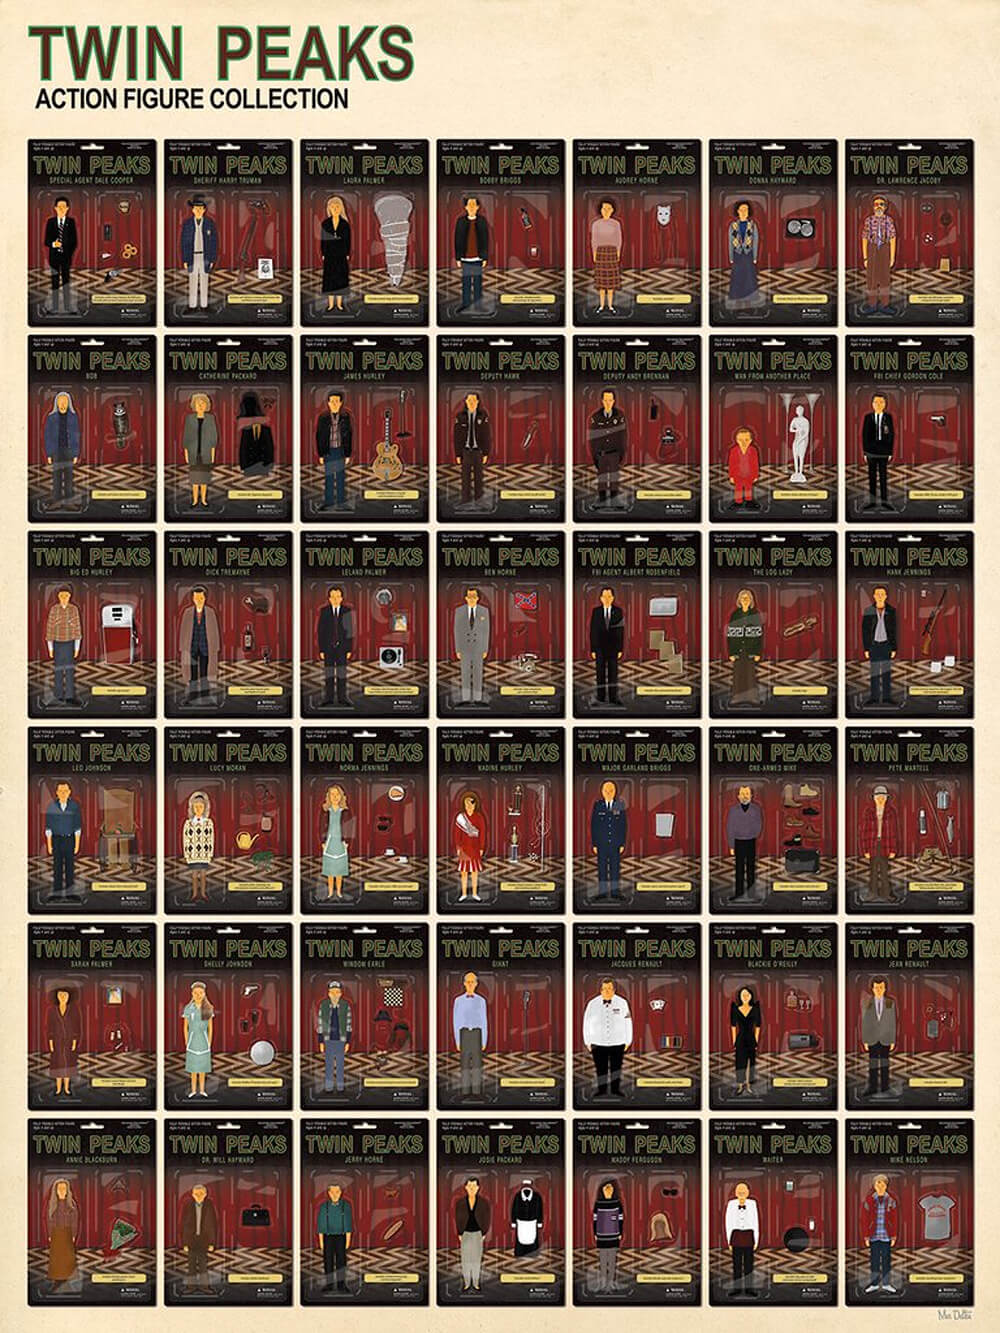 Twin Peaks Action Figure Collection